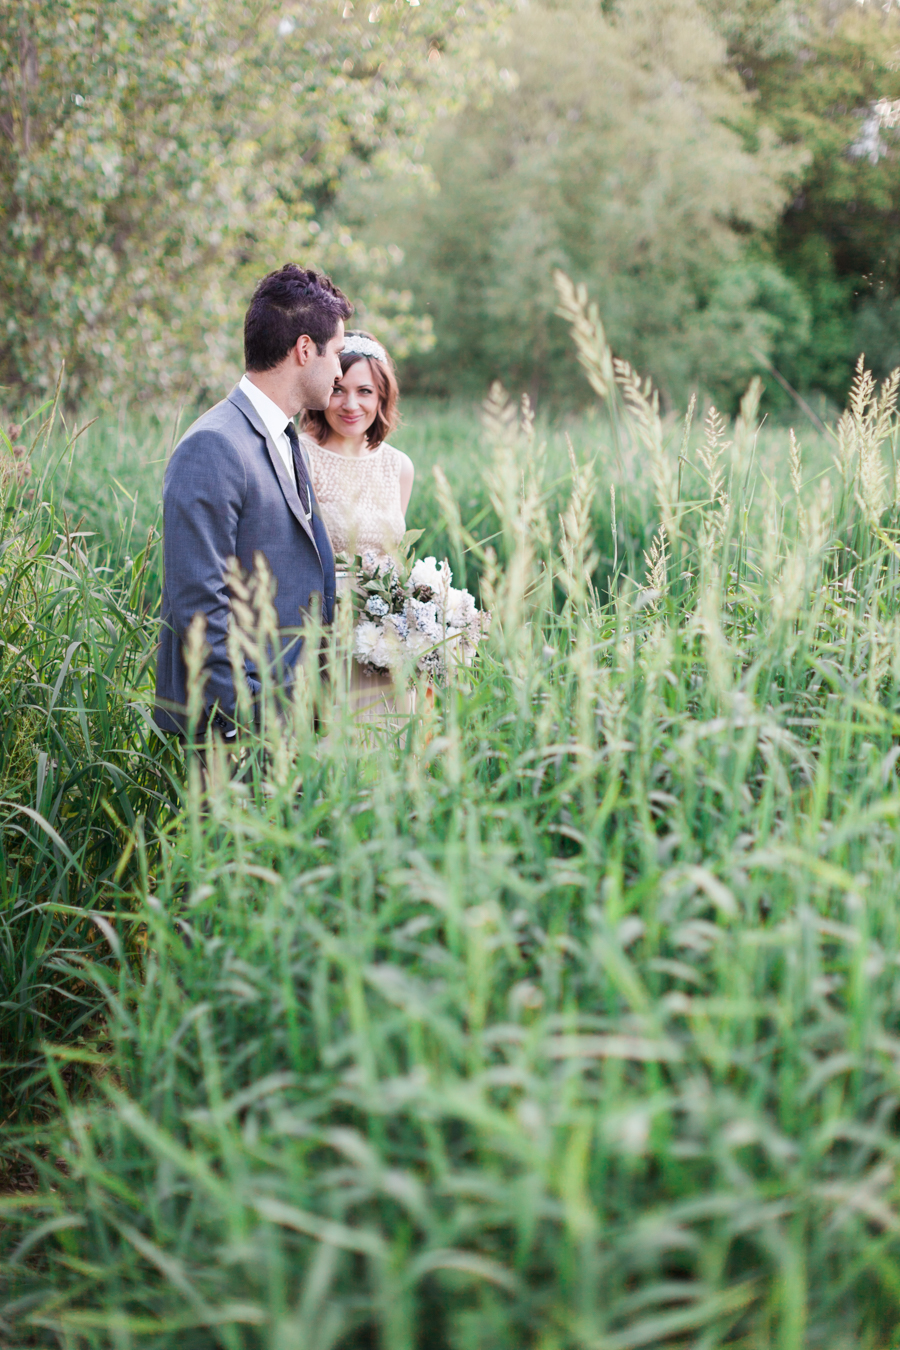 kateweinsteinphoto_megan_chris_wedding_shoot_2.jpg